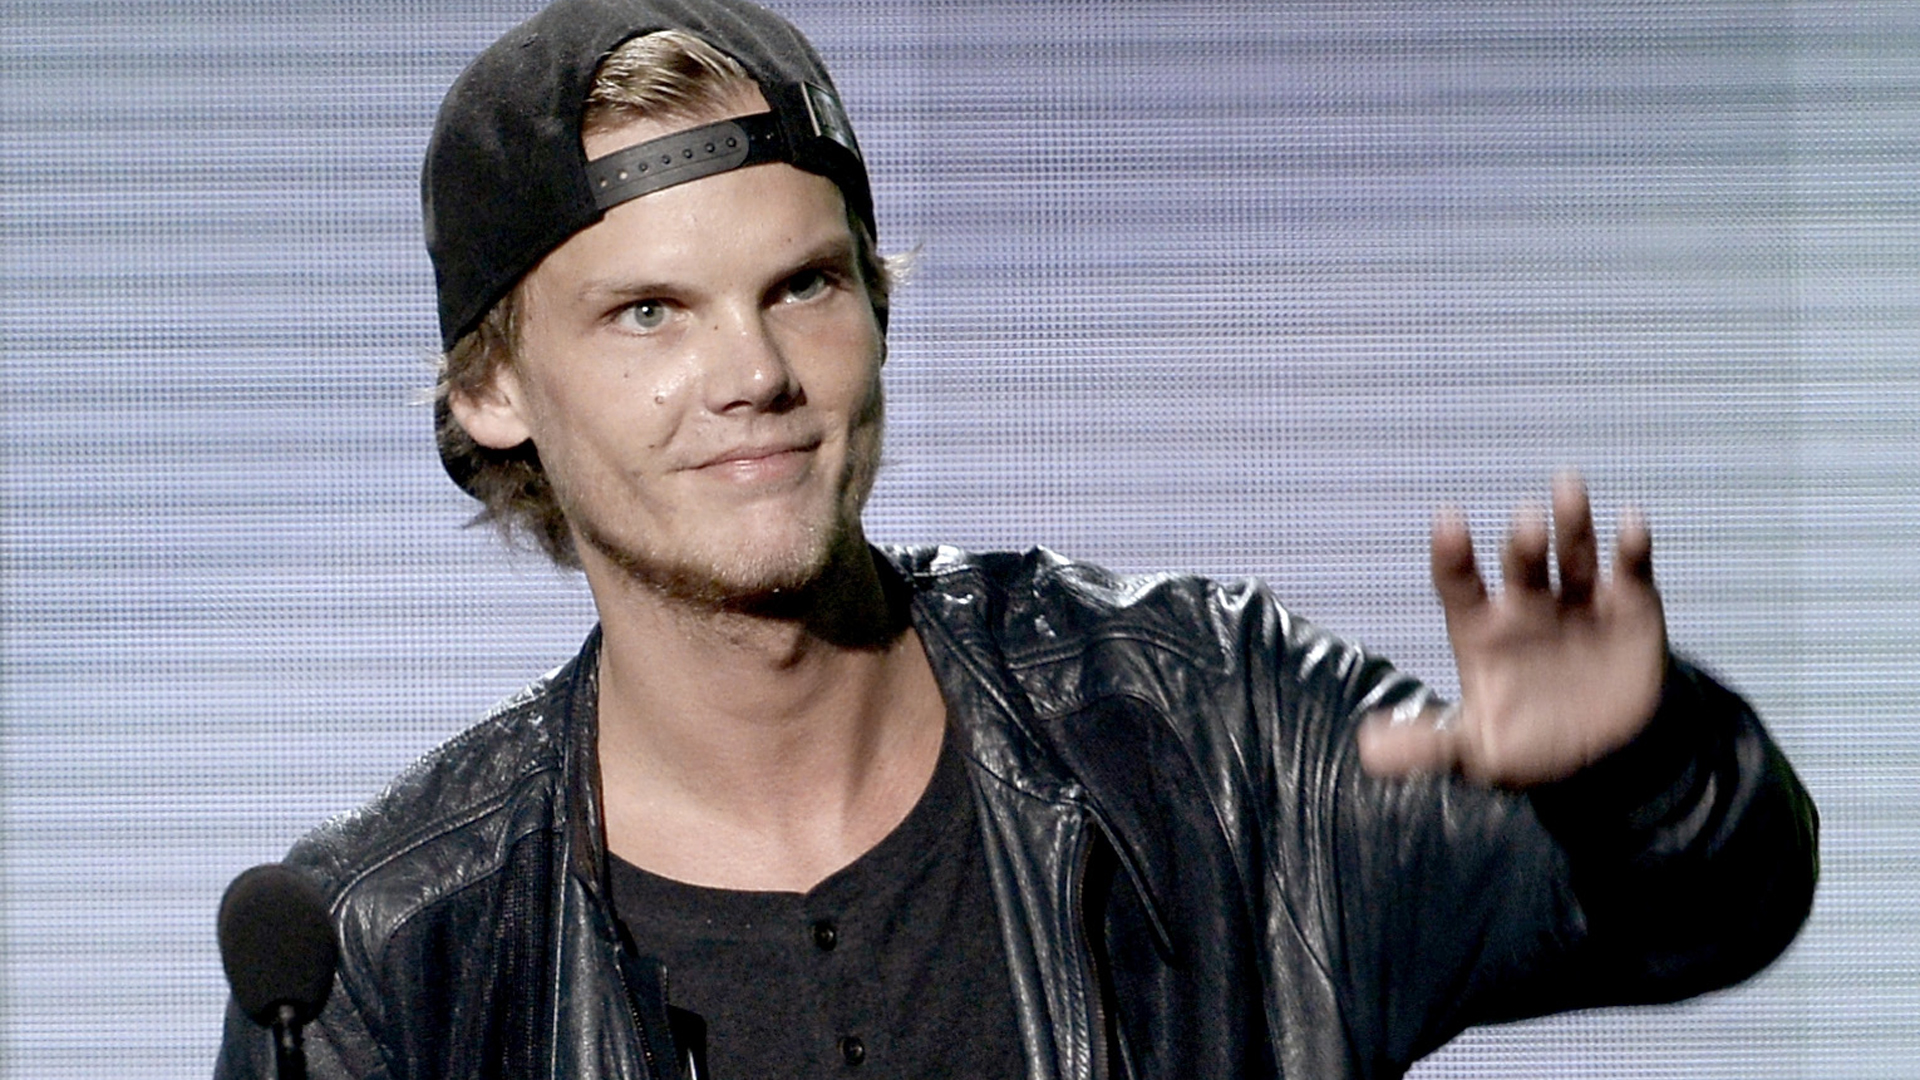 Musician Avicii accepts the Favorite Electronic Dance Music Artist award onstage during the 2013 American Music Awards at Nokia Theatre L.A. Live on November 24, 2013 in Los Angeles, California. (Credit: Kevin Winter/Getty Images)